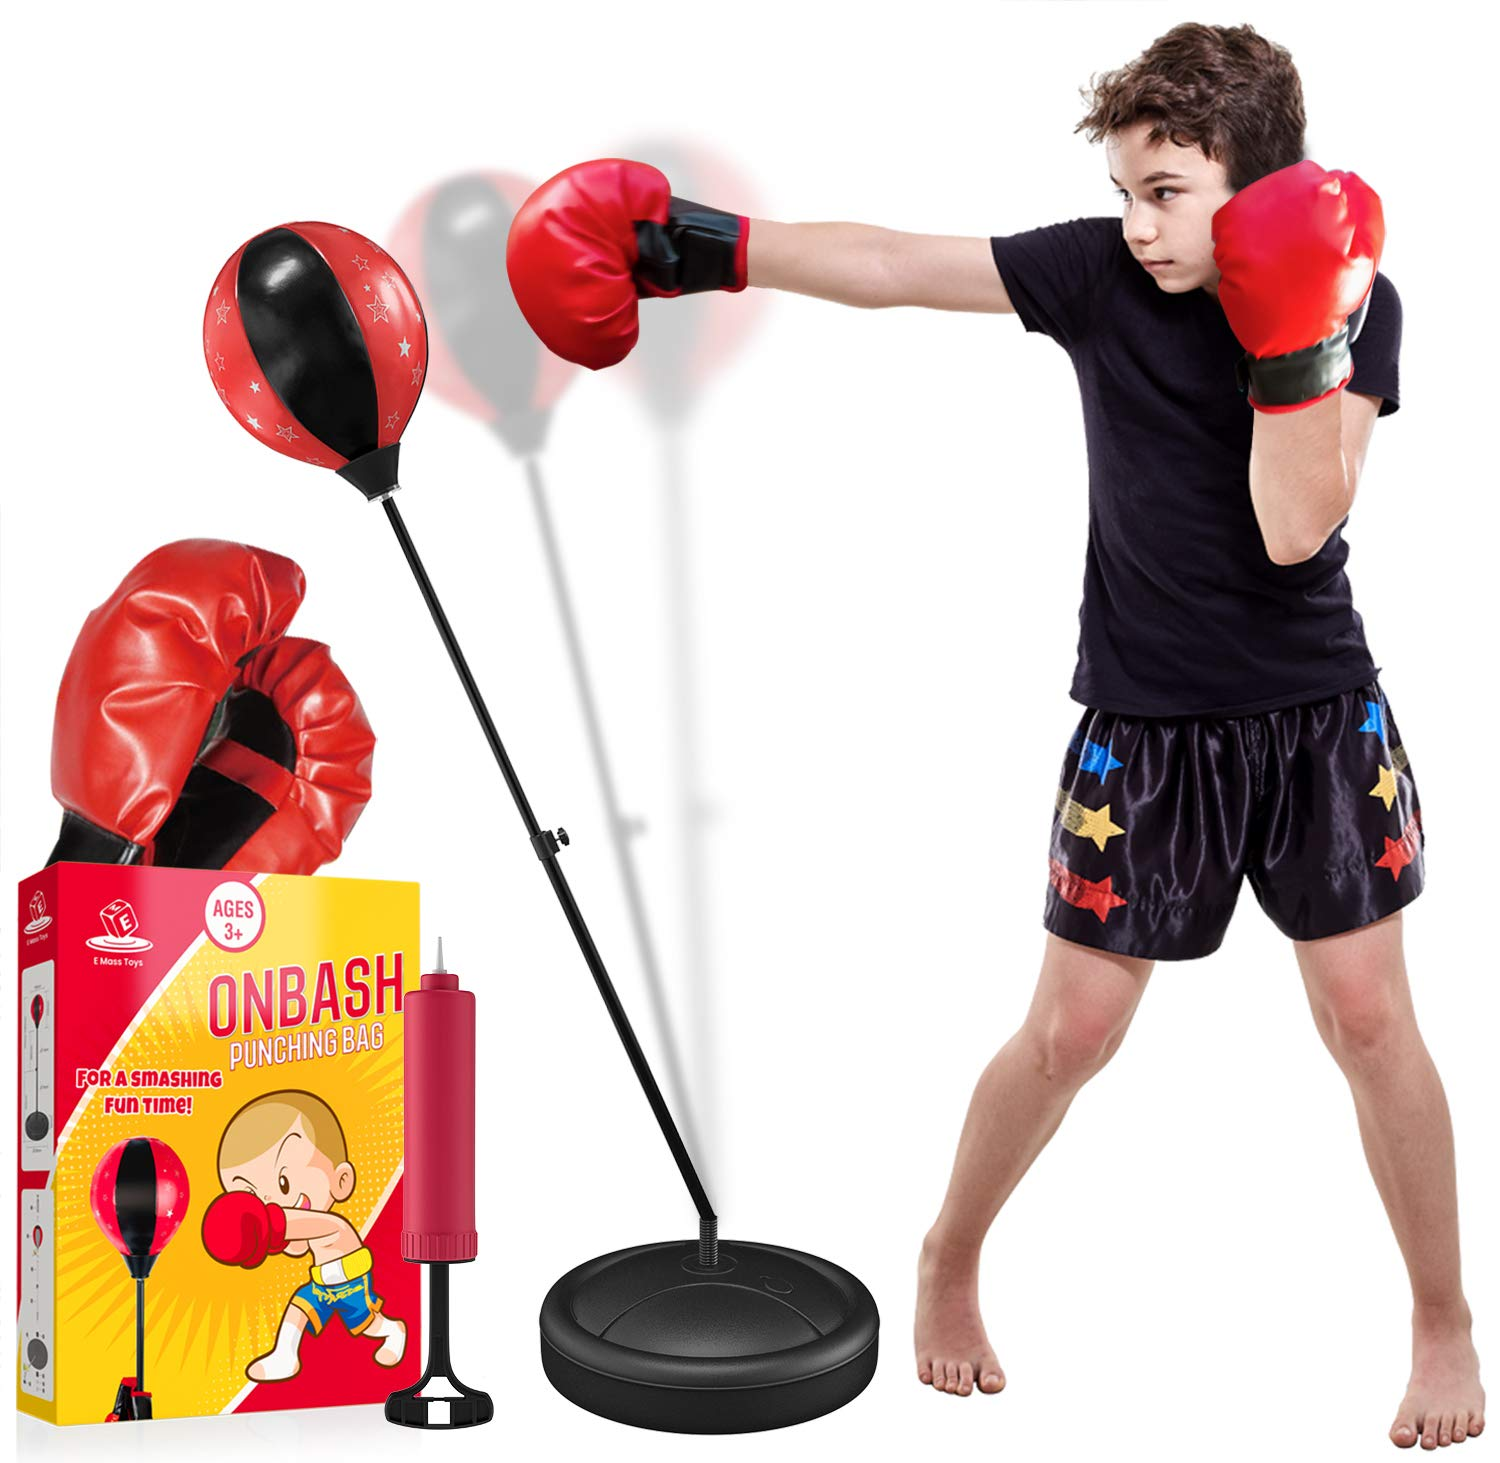 Punching Bag Set for Kids with Boxing Gloves & Hand Pump - 3-8 Years Old Adjustable Kids Punching Bag with Stand - Top Gifting Idea for for Girls & Boys- Portable & Long-Lasting